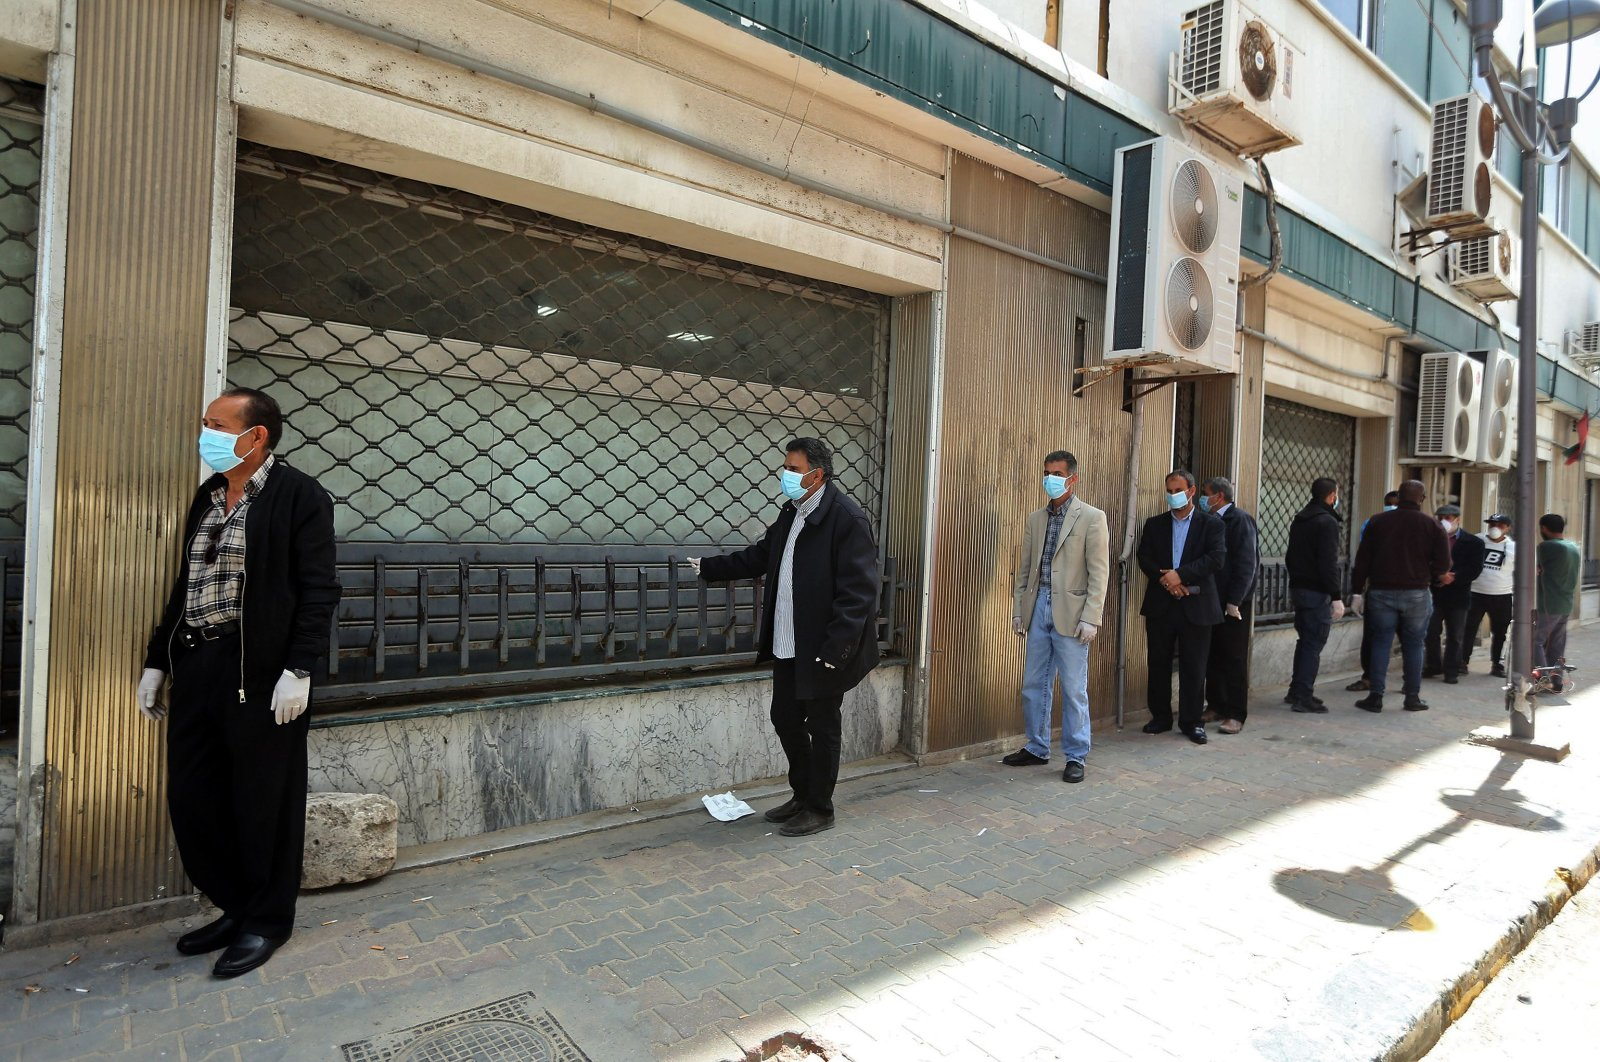 Libyans wearing protective face masks queue in front of a bank in the centre of the capital Tripoli on April 1, 2020, amidst the novel coronavirus pandemic crisis. (AFP Photo)